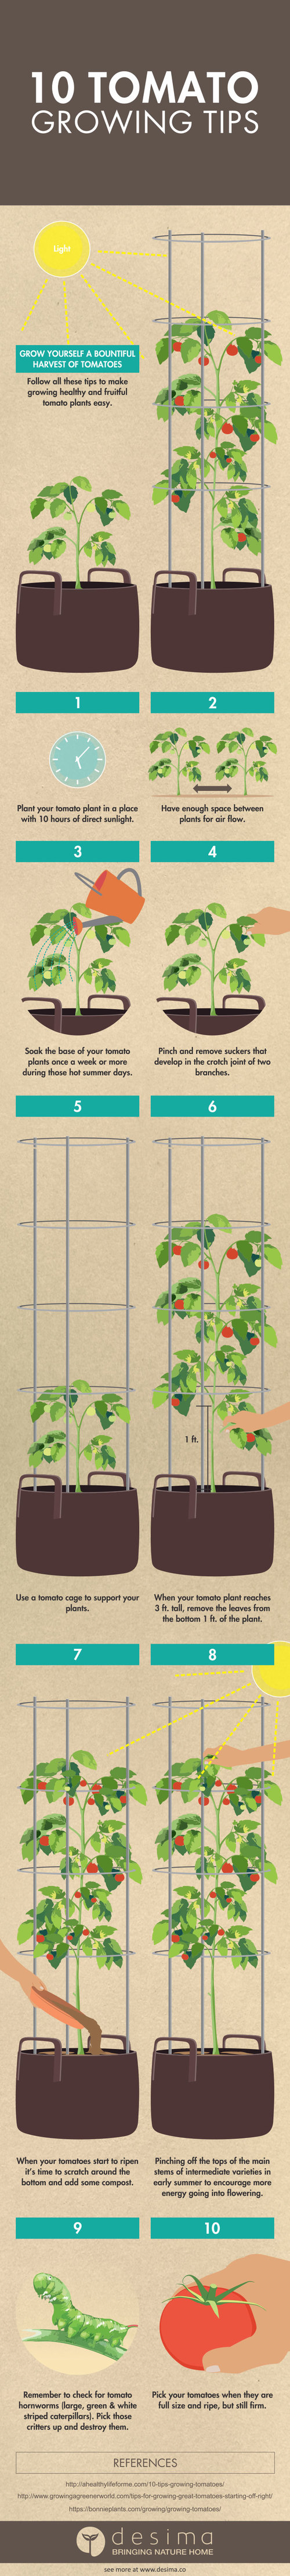 This Is One Tomato Plant Desima Prune Tomatoes Diagram Of An Error Occurred